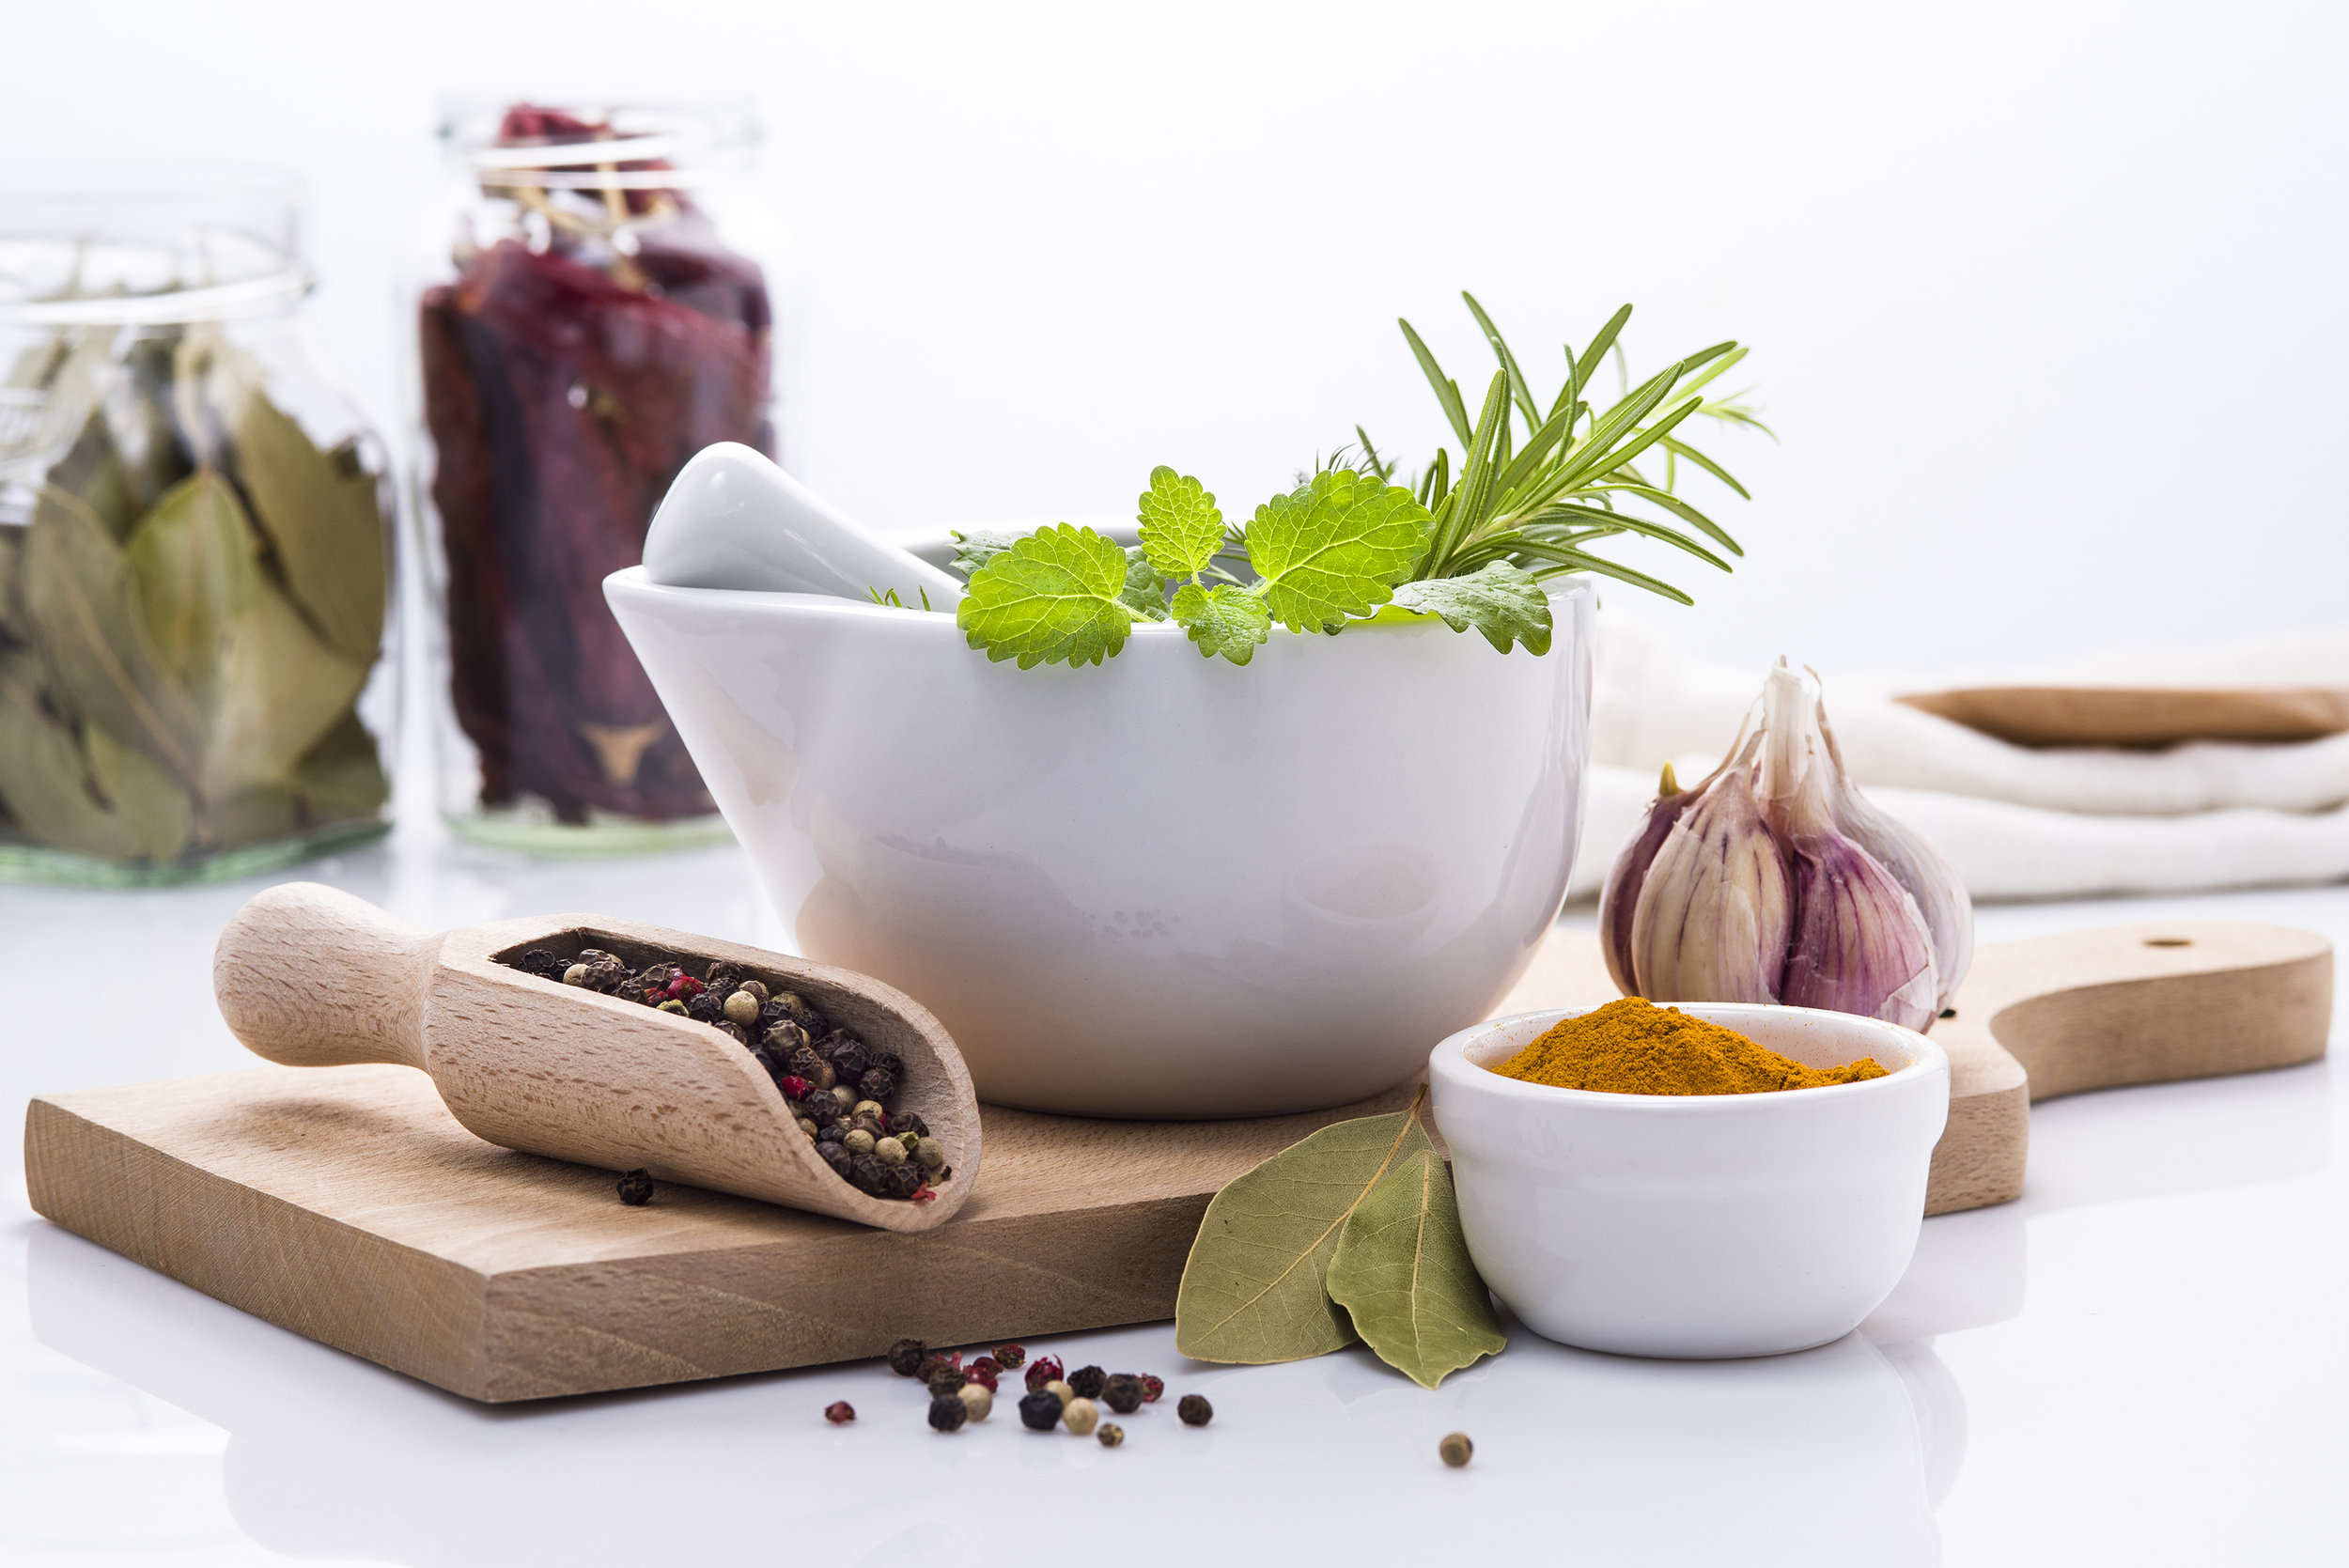 Botanical medicine - Plants have chemical constituents within them that can be ingested orally or applied on the skin to address a wide range of medical conditions. Herbs are often a gentler approach to healing compared to conventional drug therapies with less side effects, but with powerful healing potential.